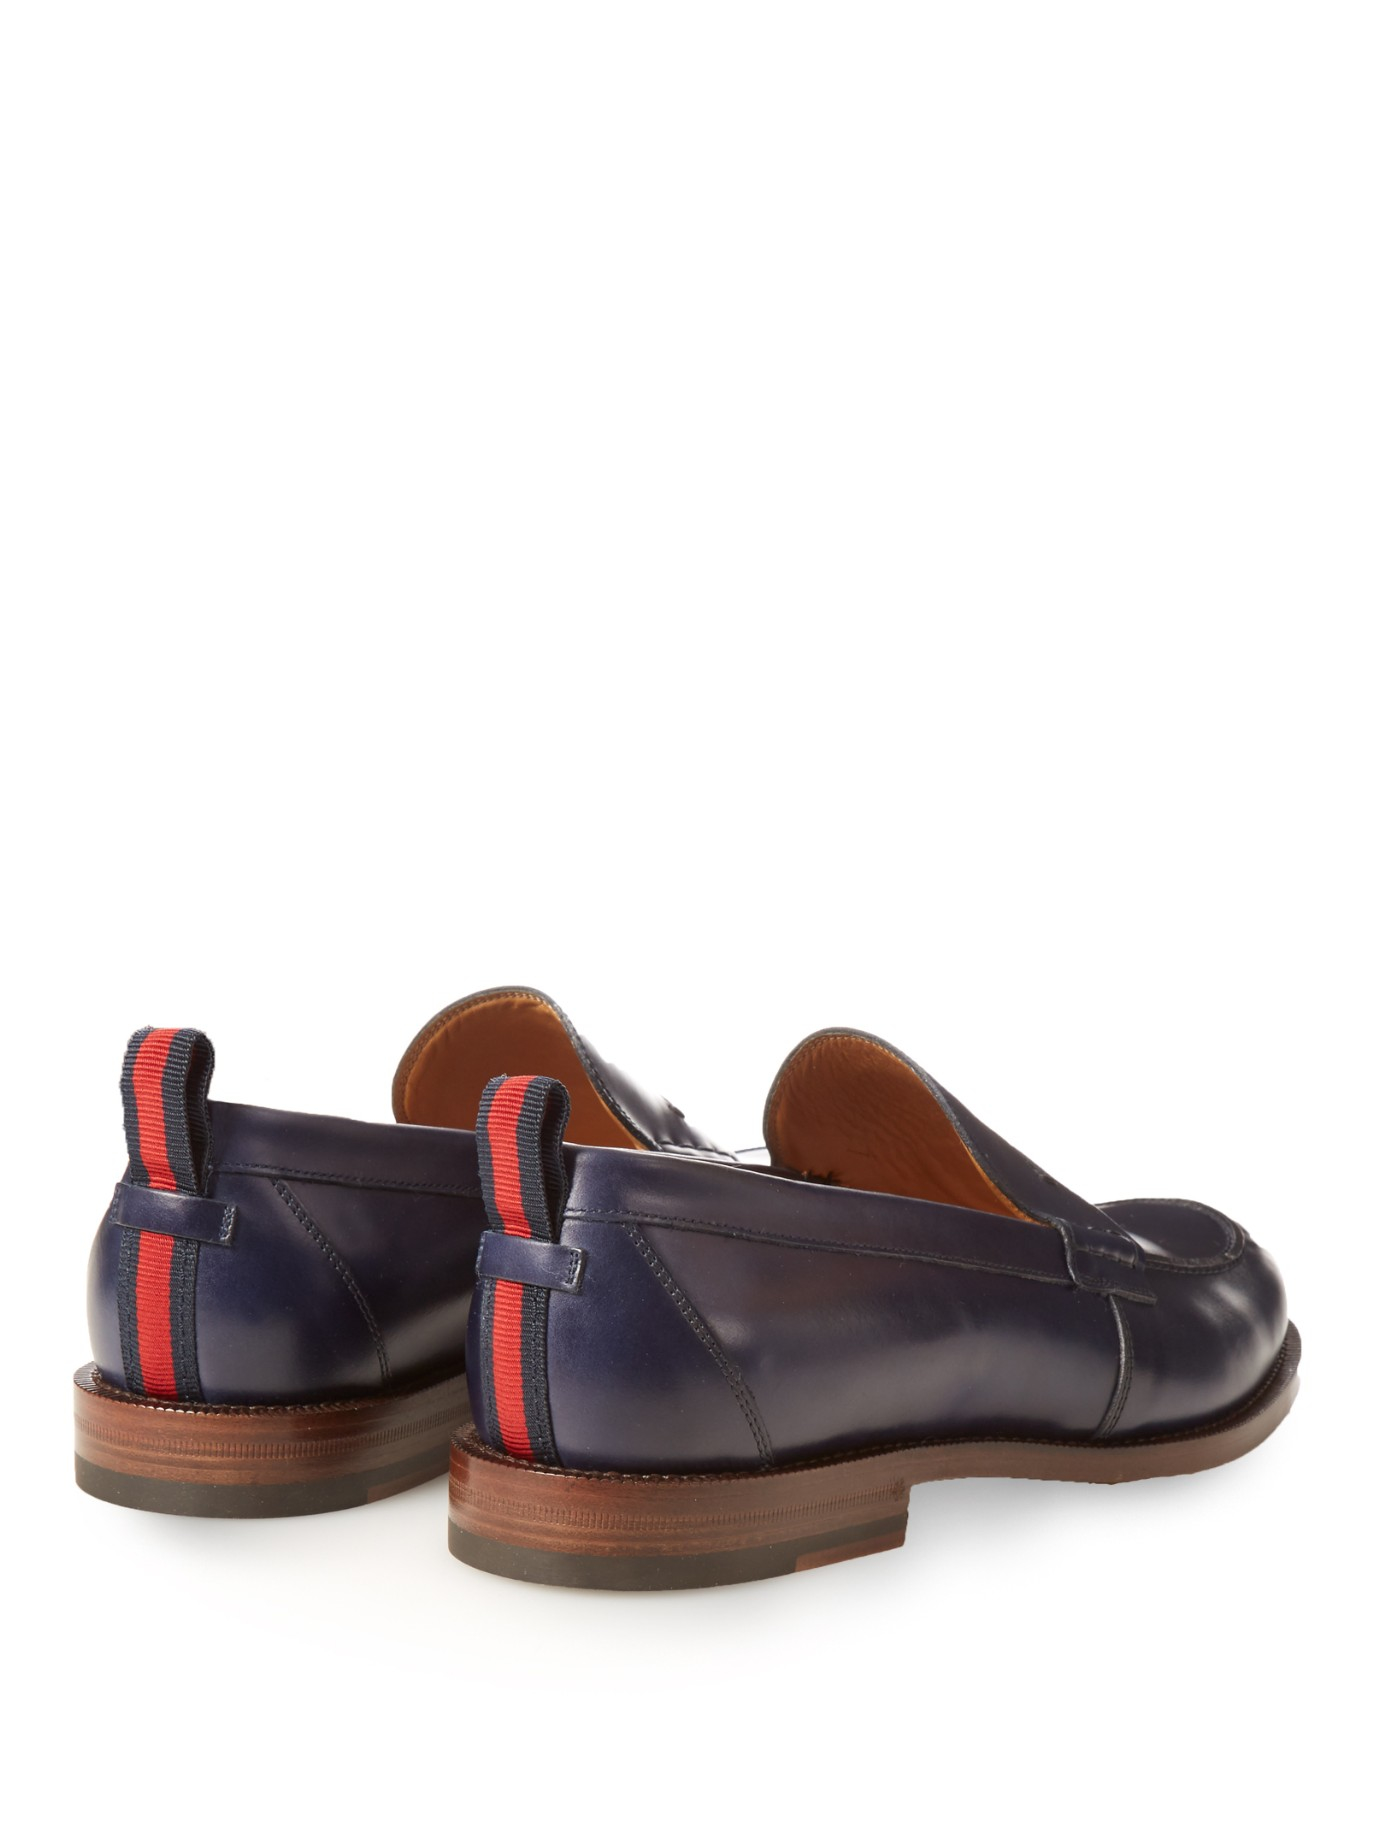 691cbe43aeb Lyst - Gucci Tobias Leather Penny Loafer in Blue for Men